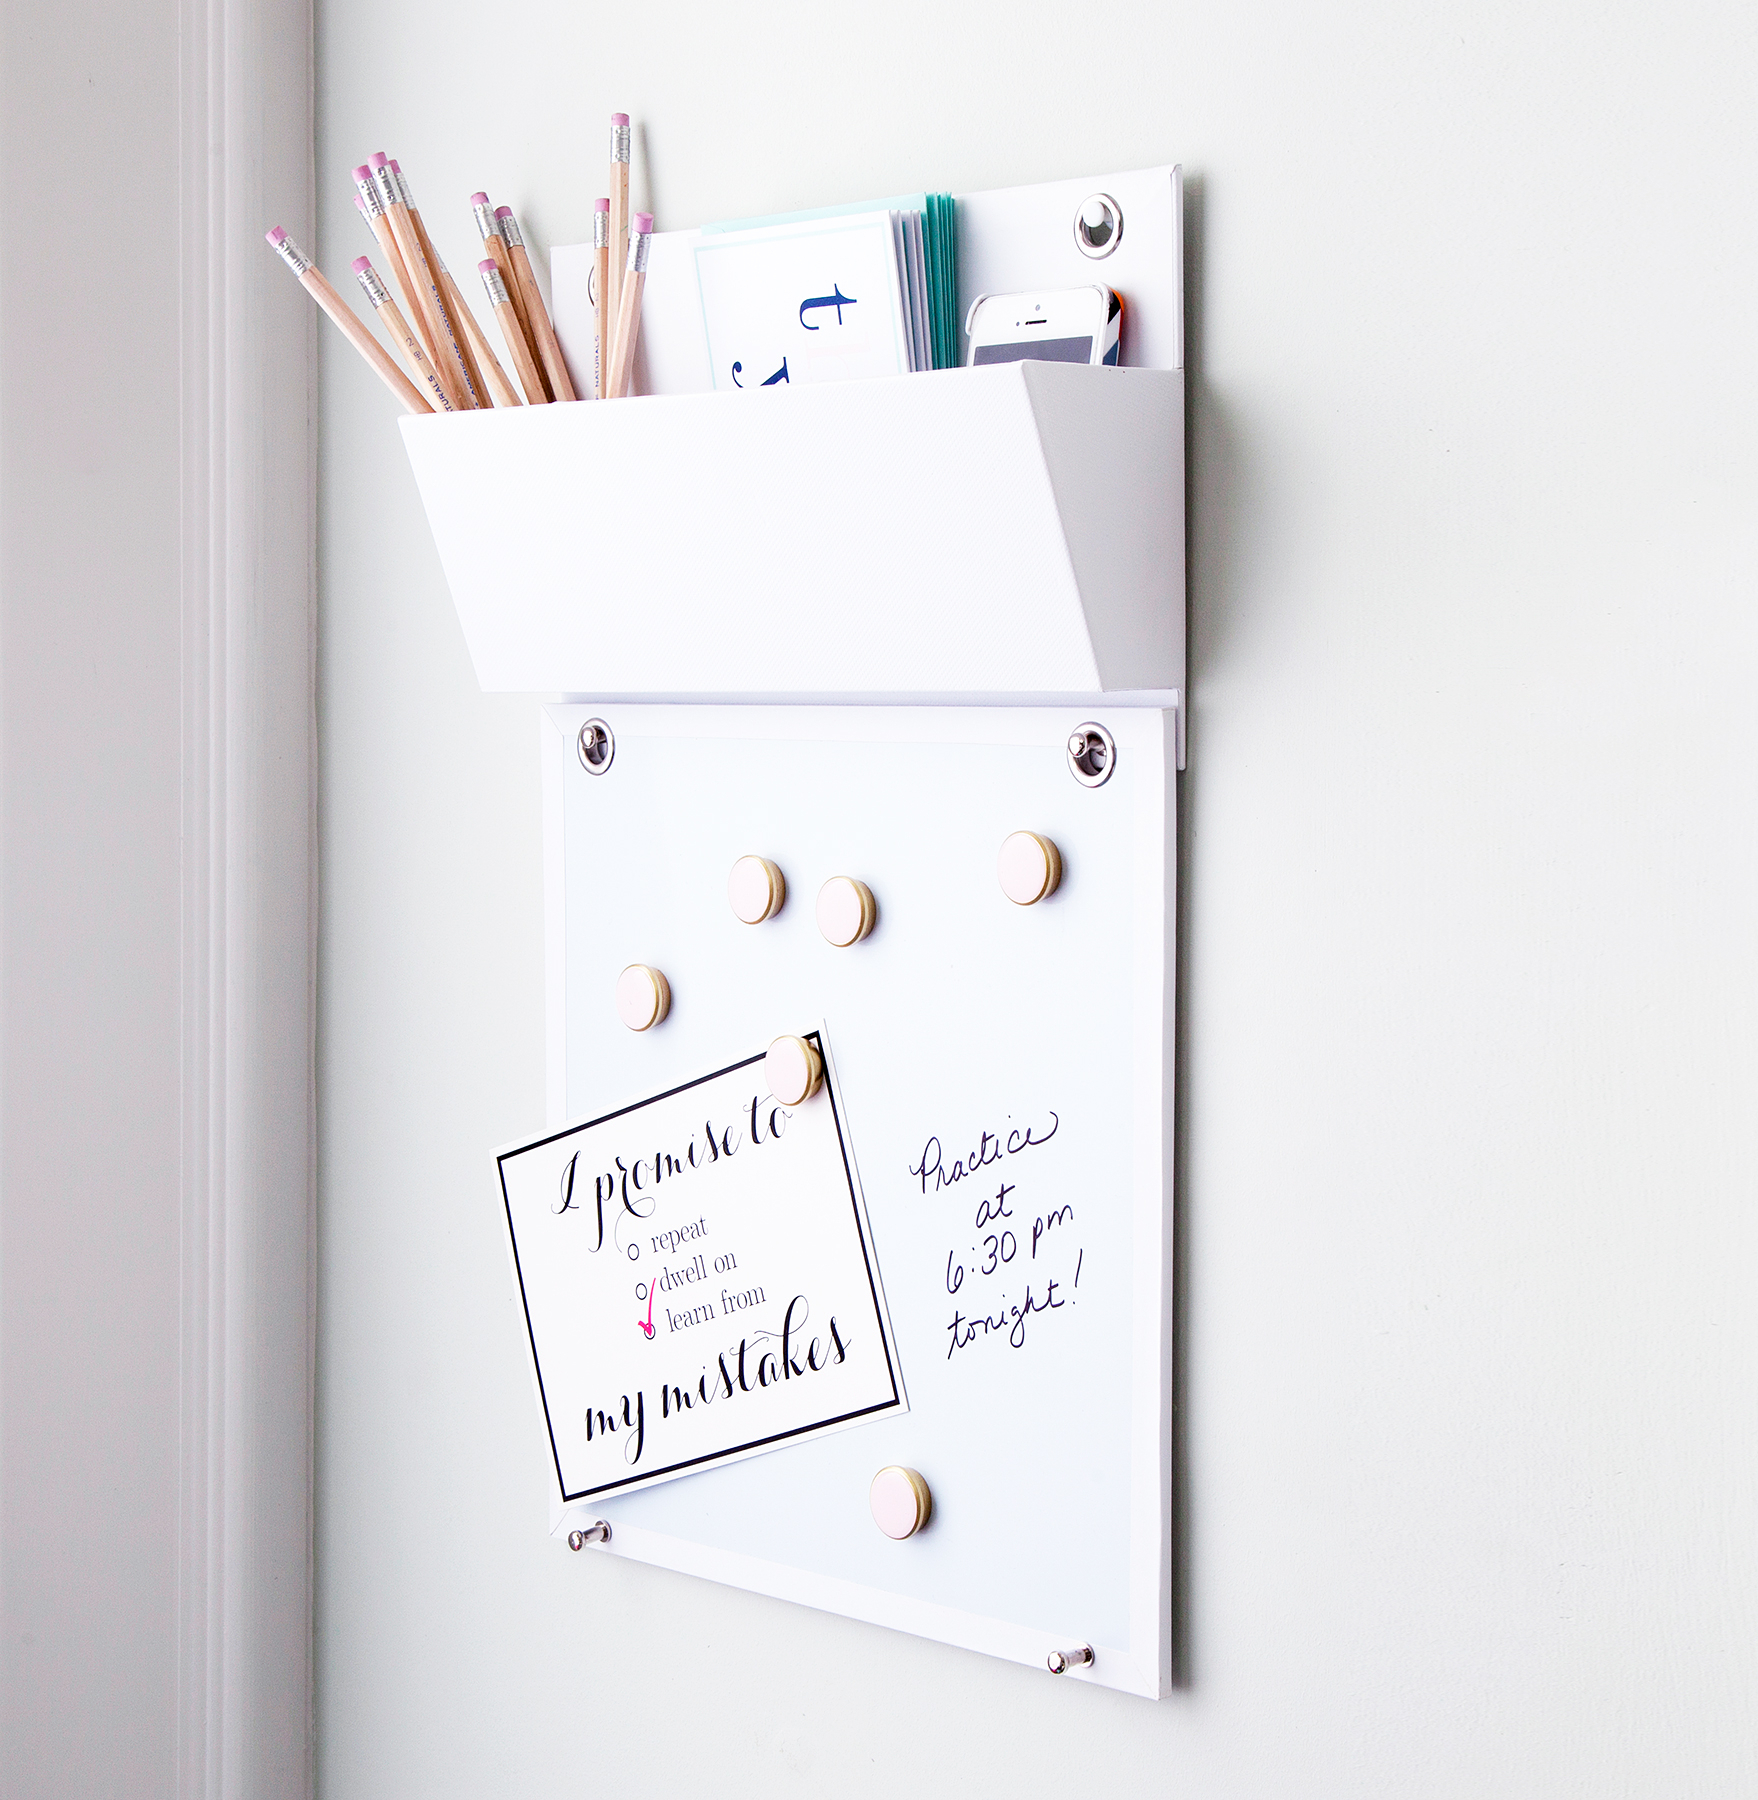 Wall-Mount System